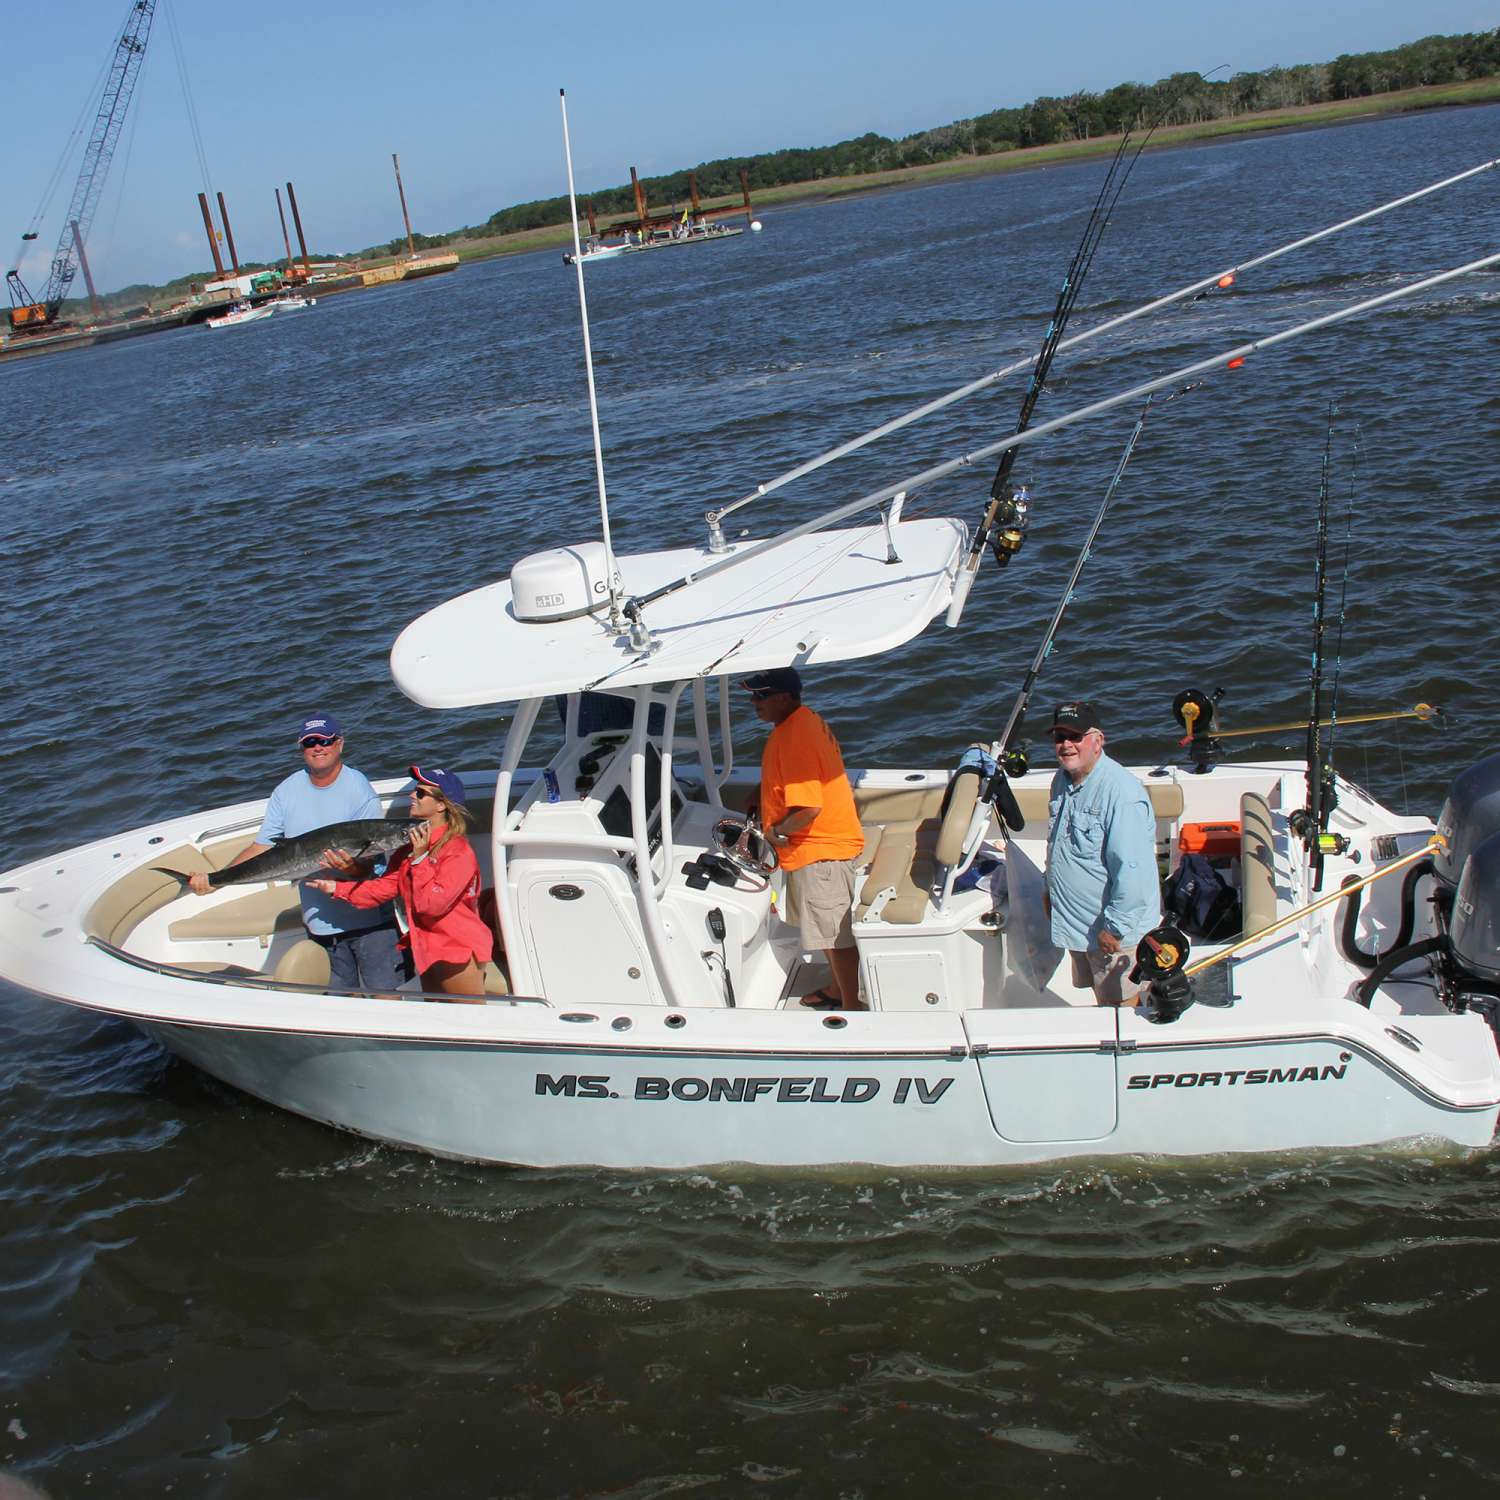 Title: Being With Family - On board their Sportsman Heritage 251 Center Console - Location: Jacksonville, Florida. Participating in the Photo Contest #SportsmanAugust2016